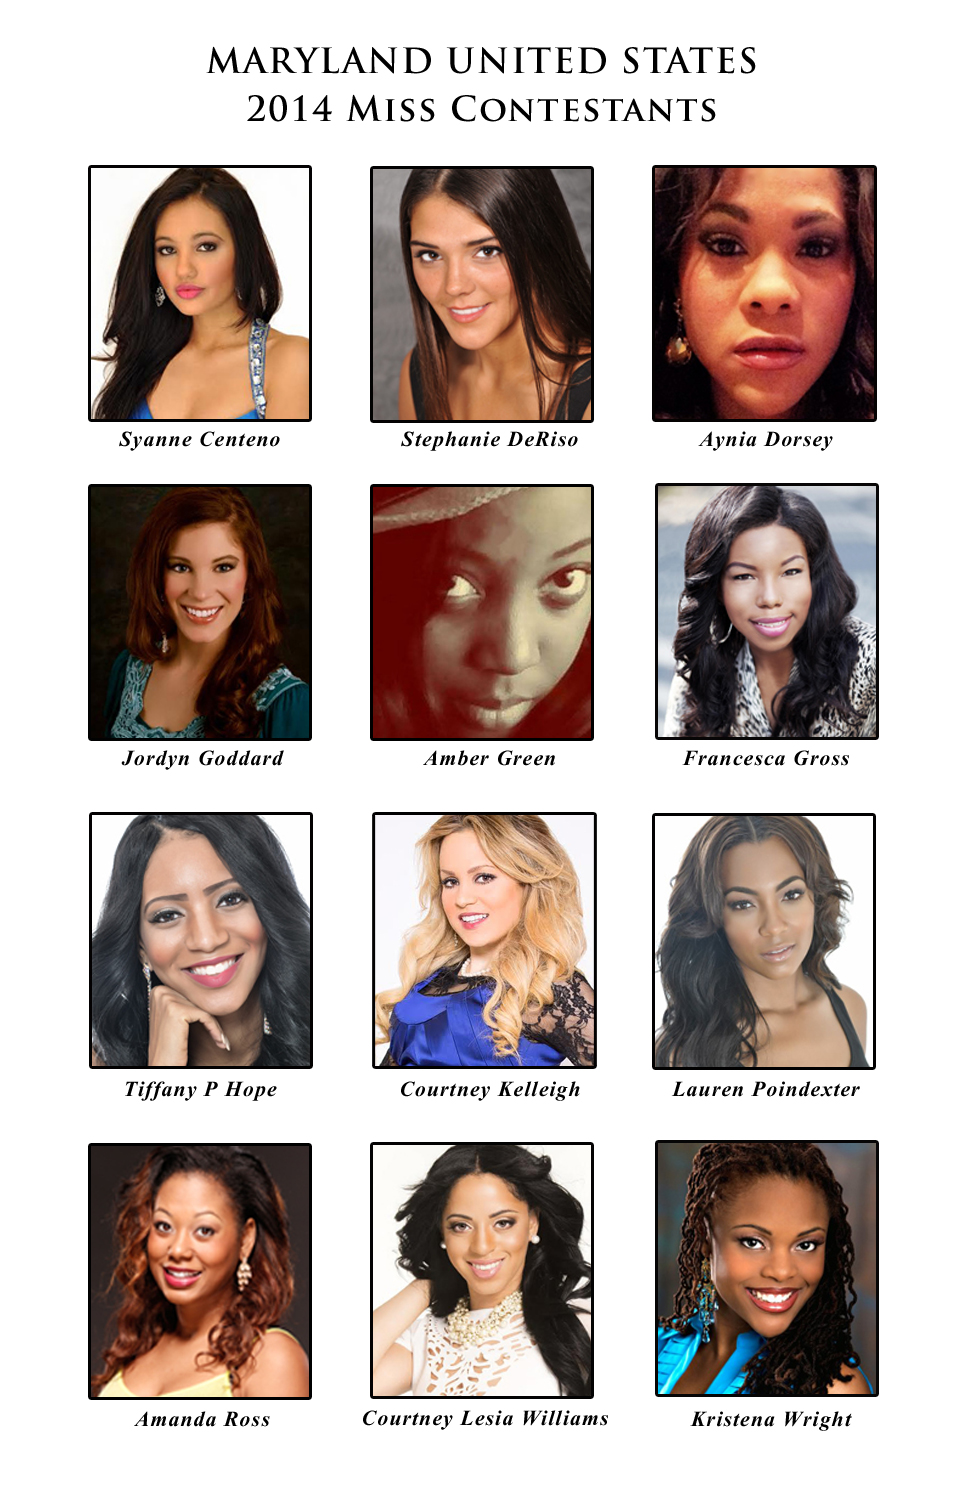 Miss Maryland United States Contestants